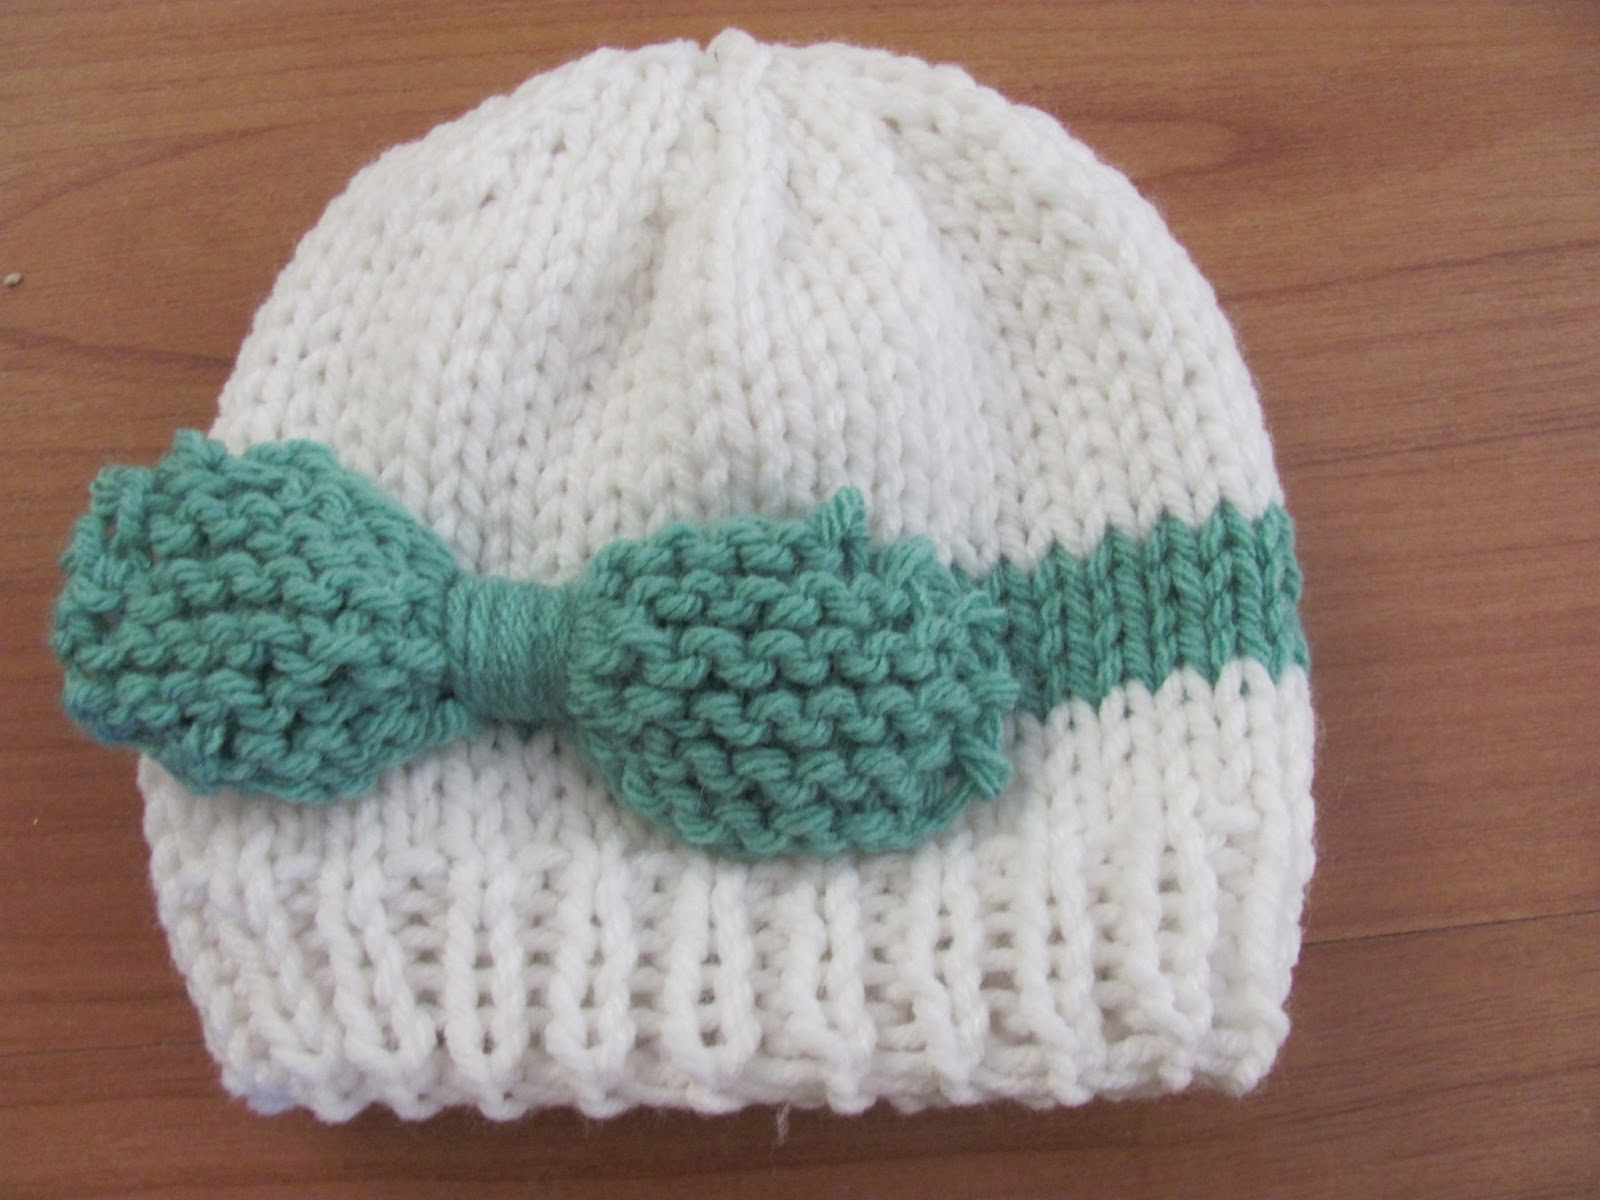 Knit Baby Hats Patterns : Twenty Something Granny: Knitted Baby Bow Hat